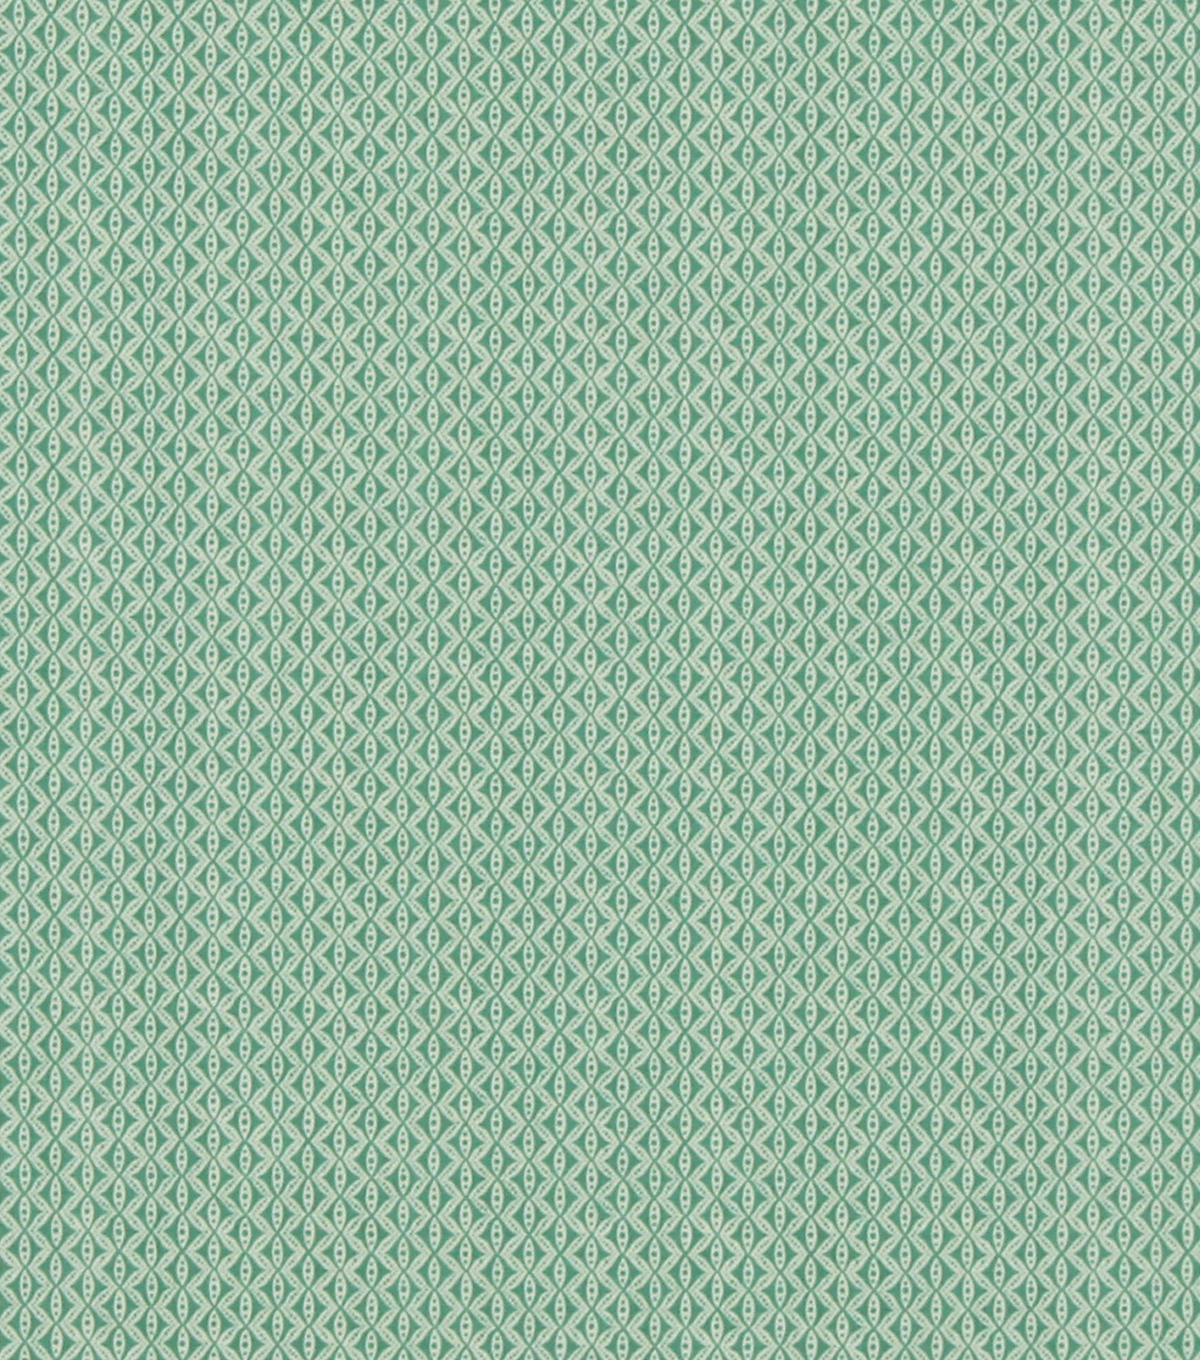 Home Decor 8\u0022x8\u0022 Fabric Swatch-Robert Allen Hand Motif Pool